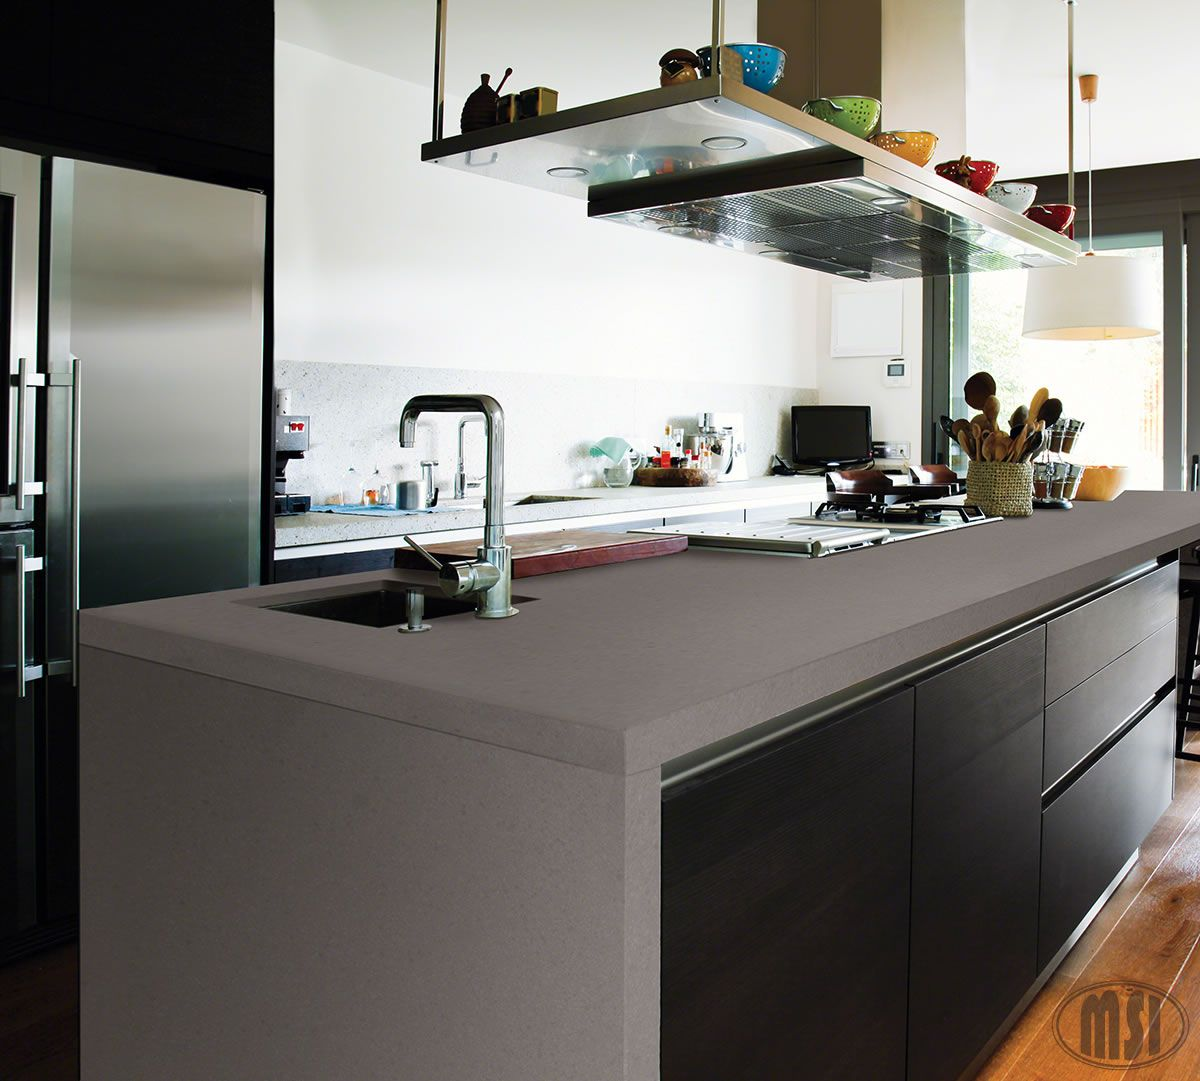 Heat up your kitchen with this amazing waterfall edge quartz countertop in  Concerto - such a